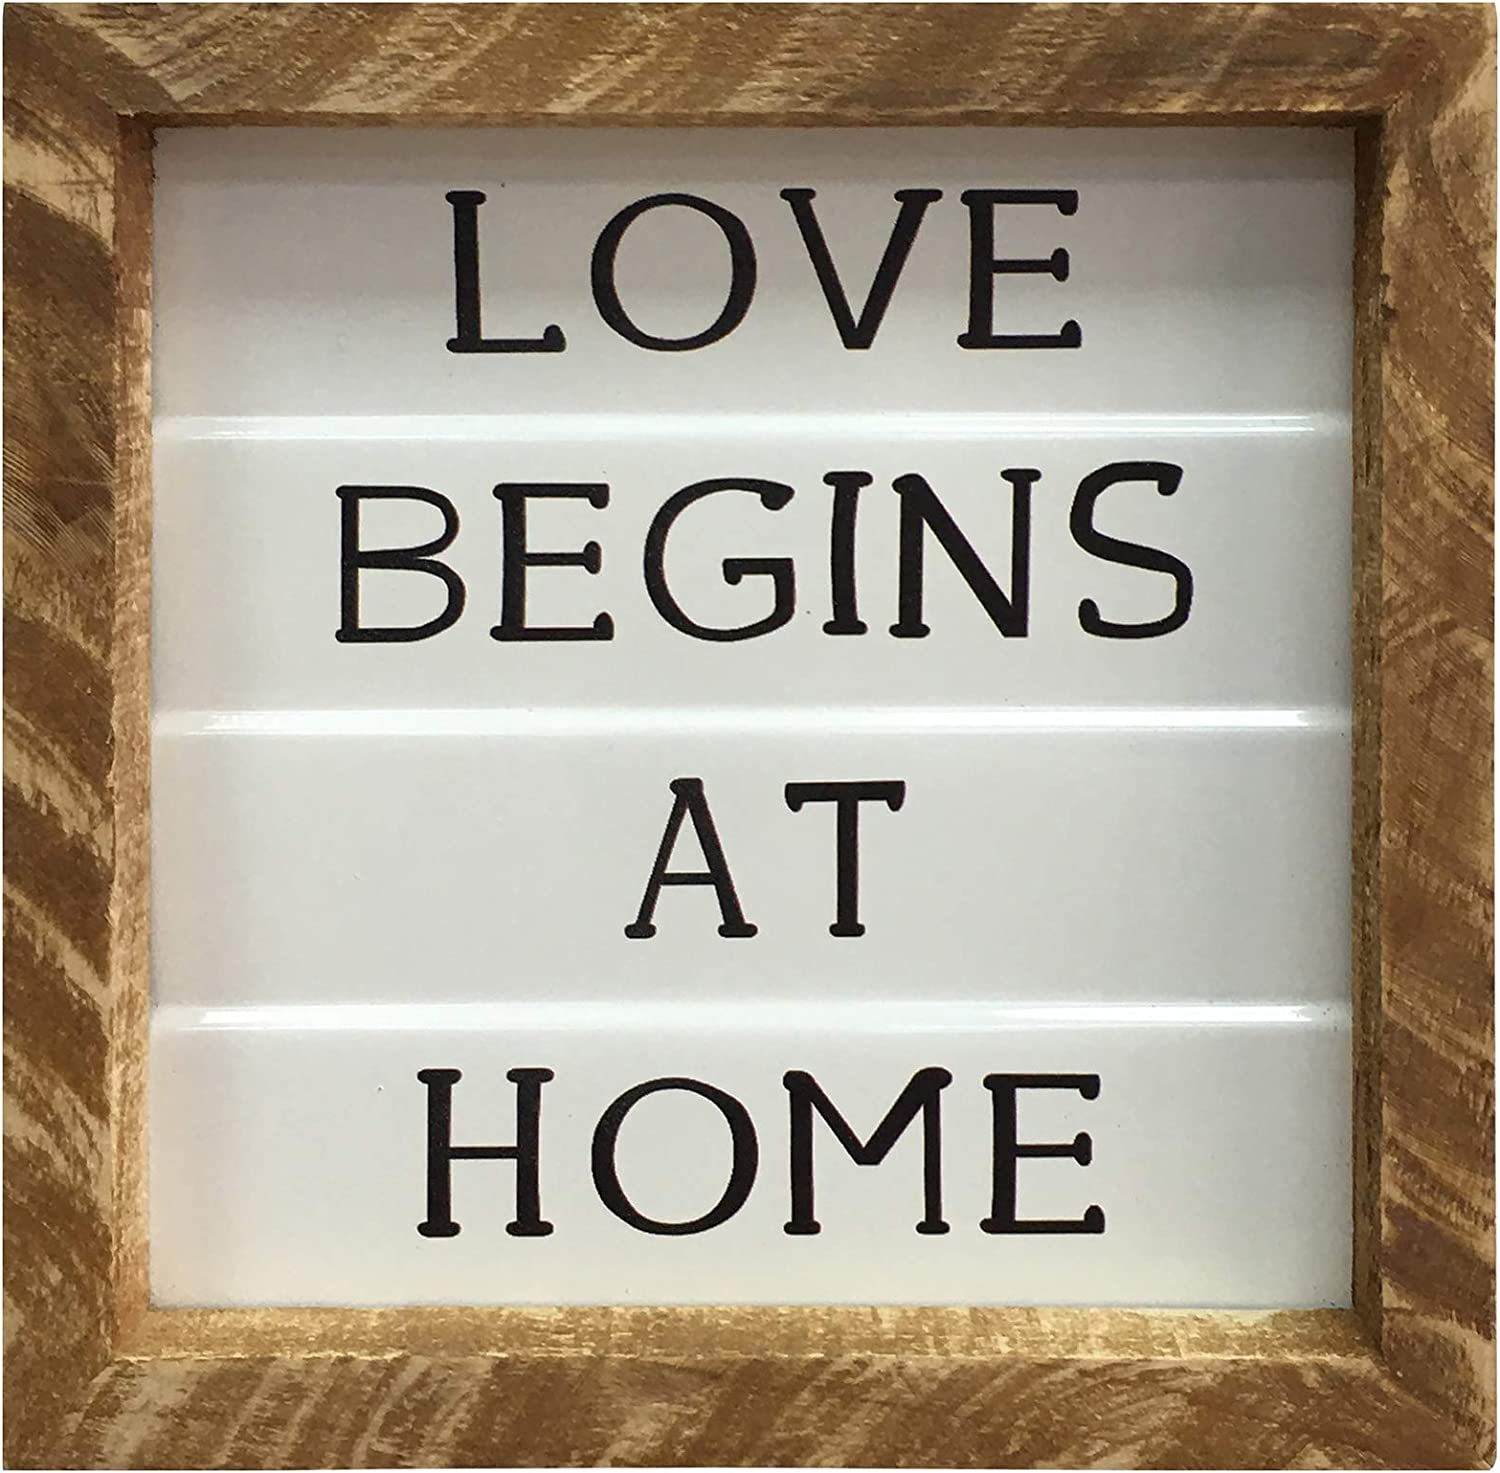 Rustic Wood Metal Signs, 7x7 inch Embossed Enamel Wall Hanging Art Home Table Decor, Distressed Farmhouse Wooden Box Sign Gift for Shelf Mantel Living Dining Room Bedroom Kitchen - LOVE BEGINS AT HOME